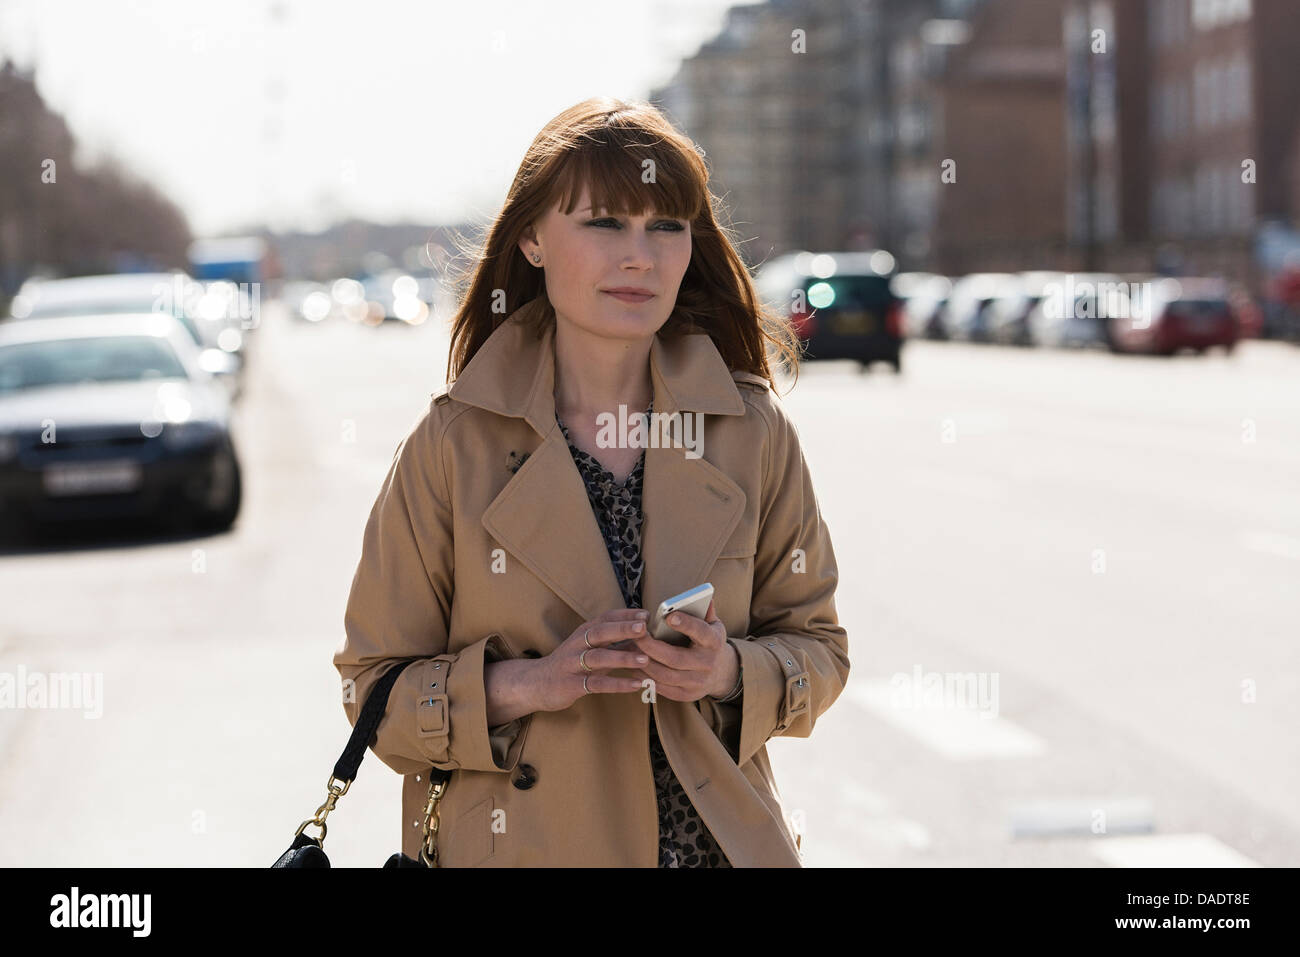 Woman with mobile phone walking down street - Stock Image